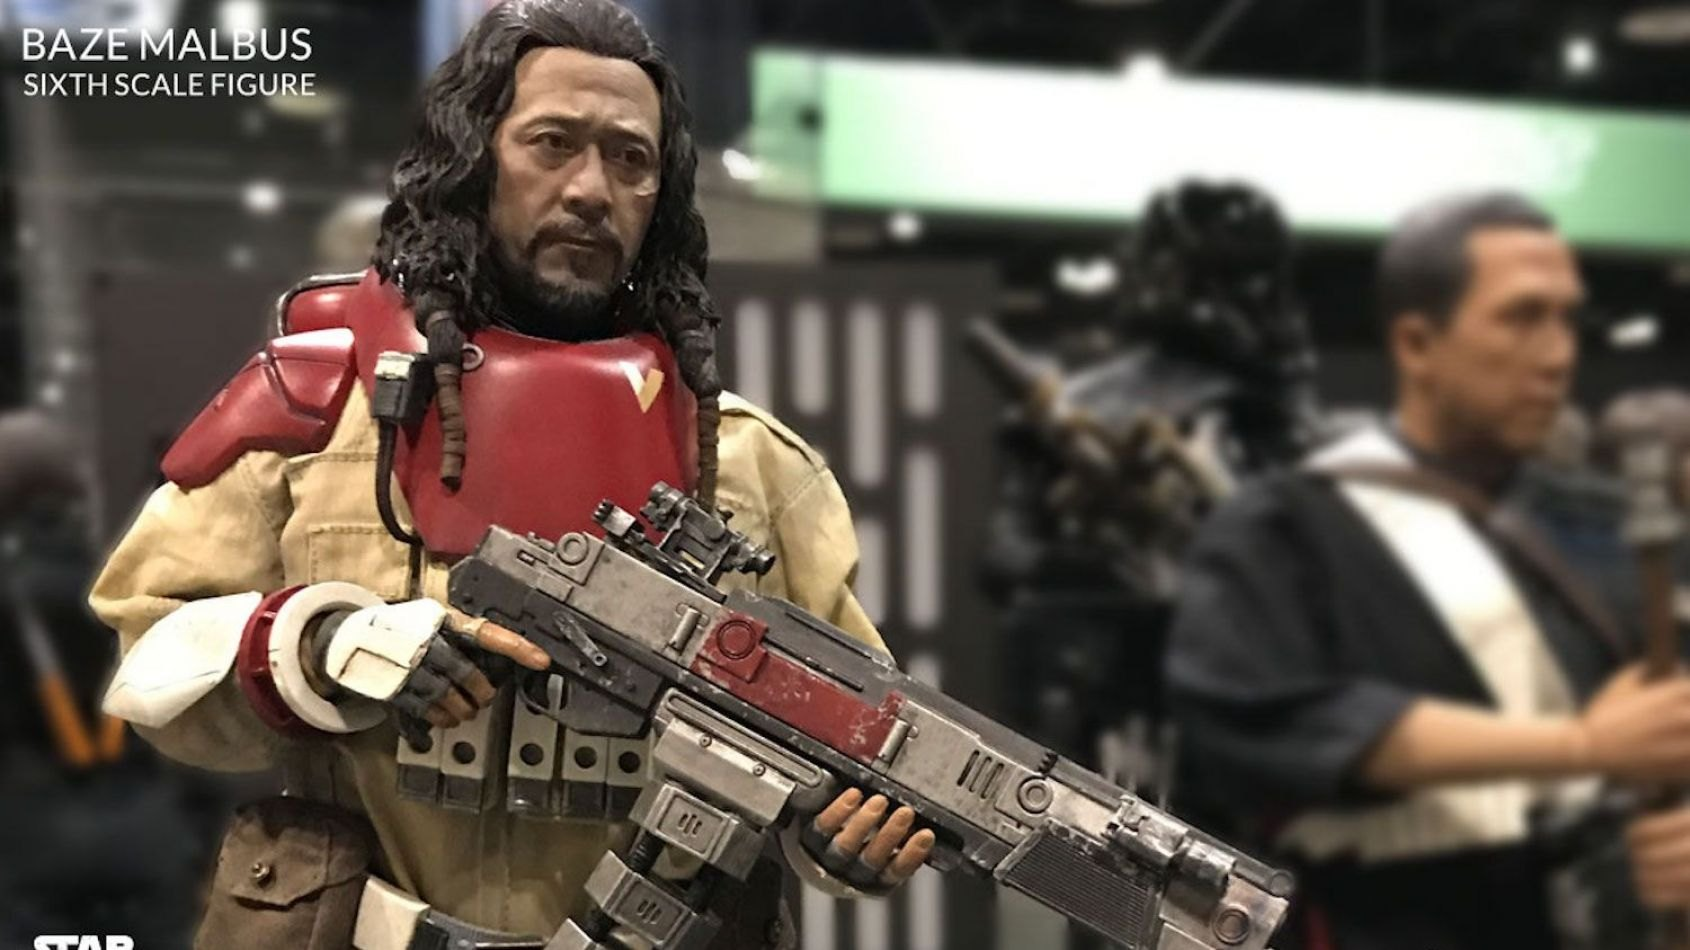 Hot Toys: la figurine de Baze Malbus de Rogue One